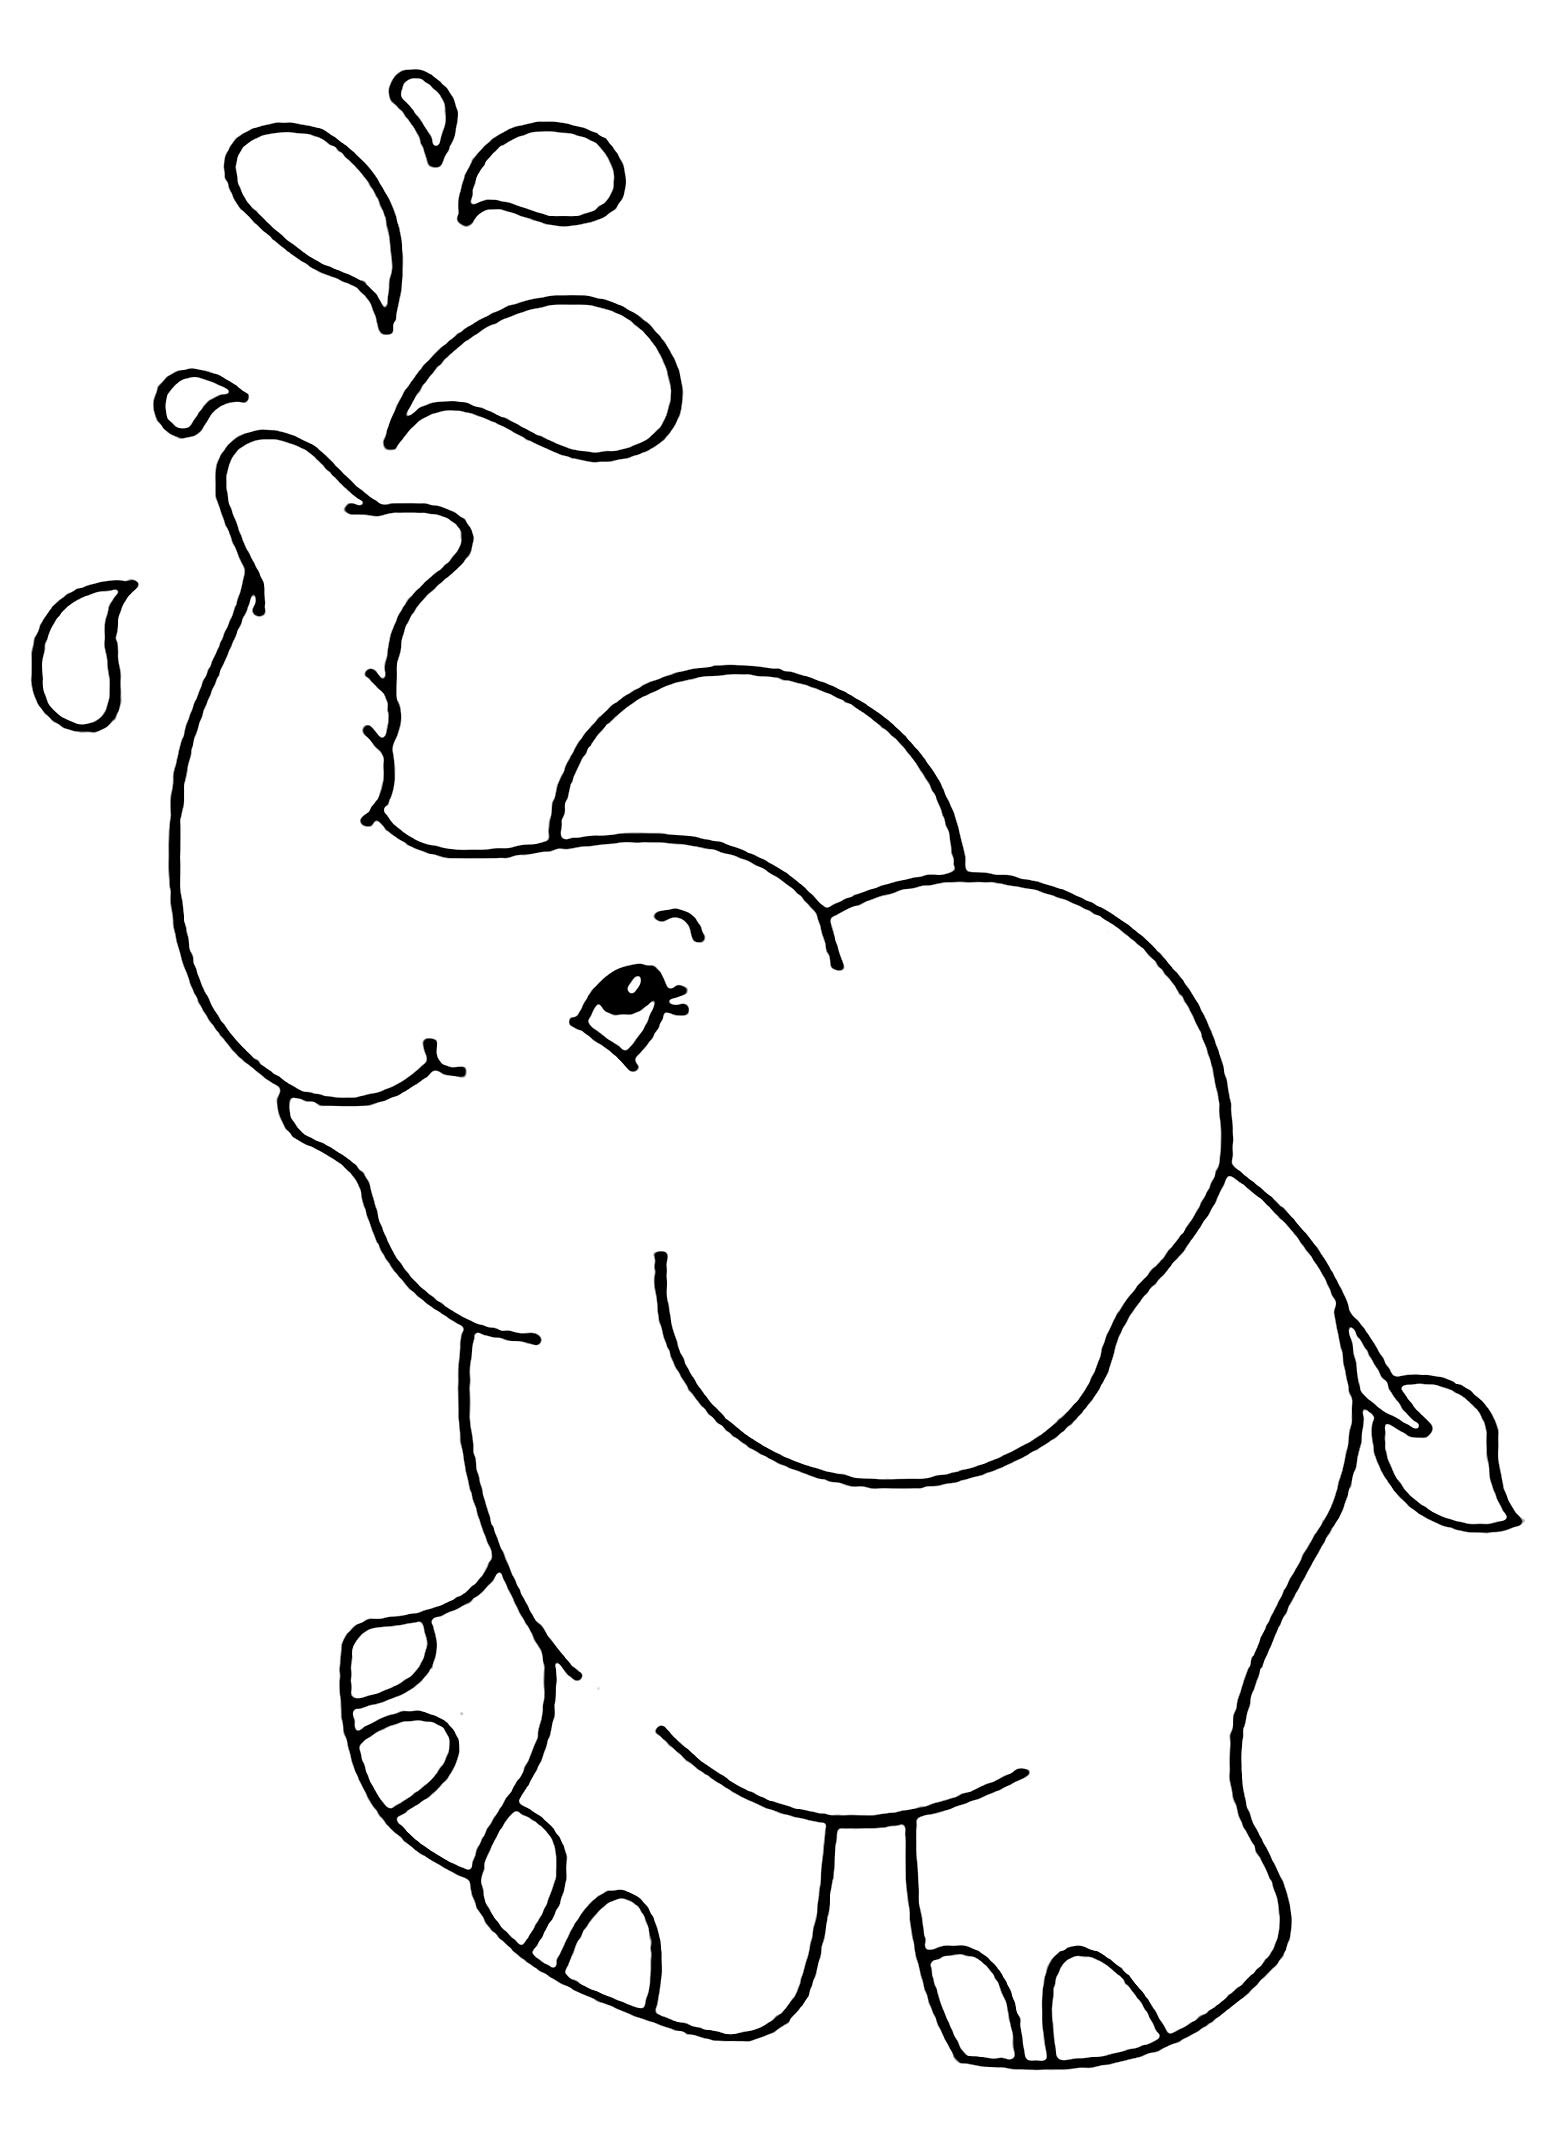 - Elephants Free To Color For Kids - Elephants Kids Coloring Pages